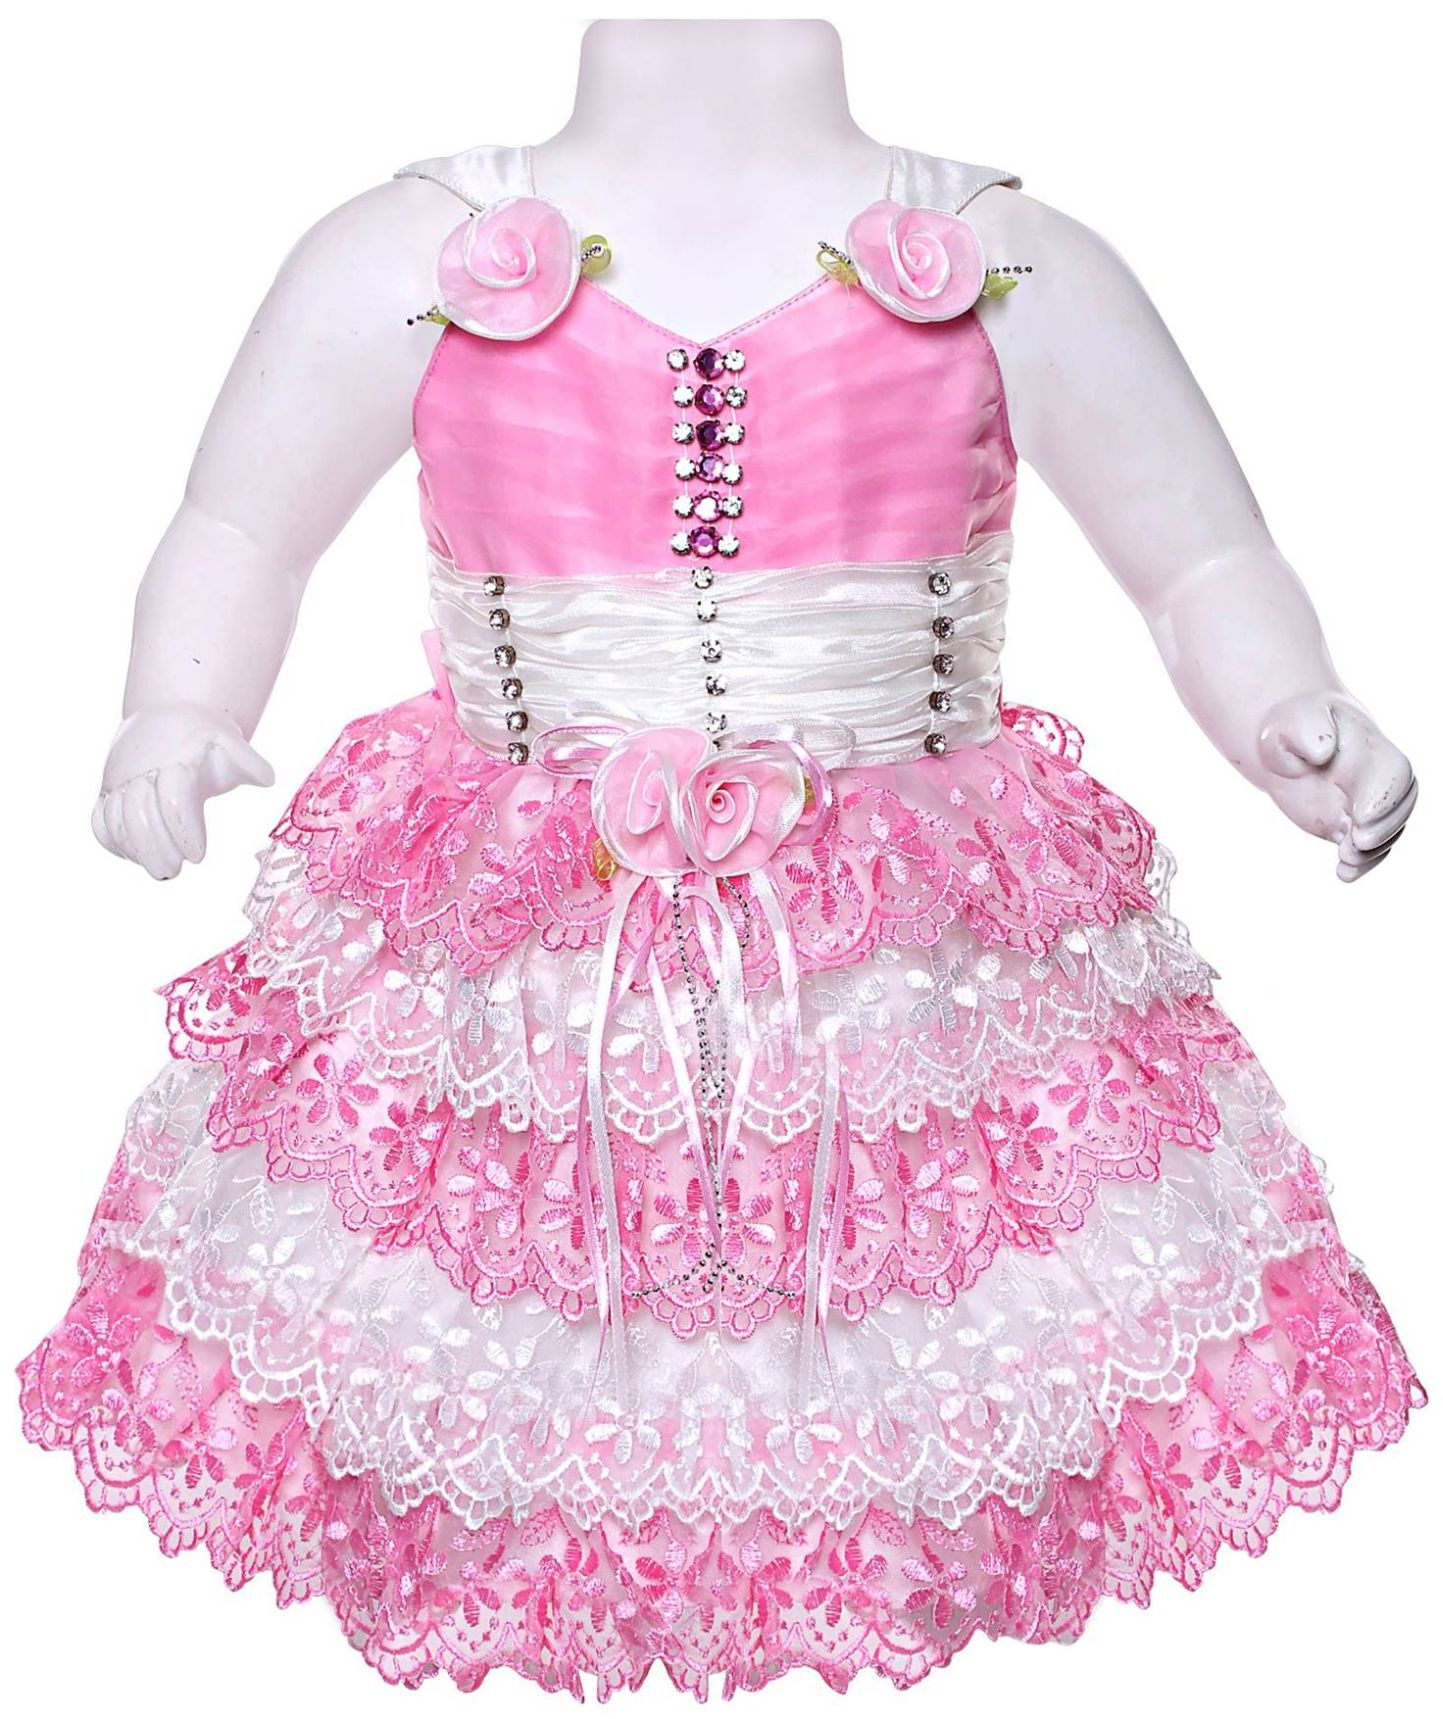 cf71f747f Latest Baby Frock Designs 2016 for Small Kids